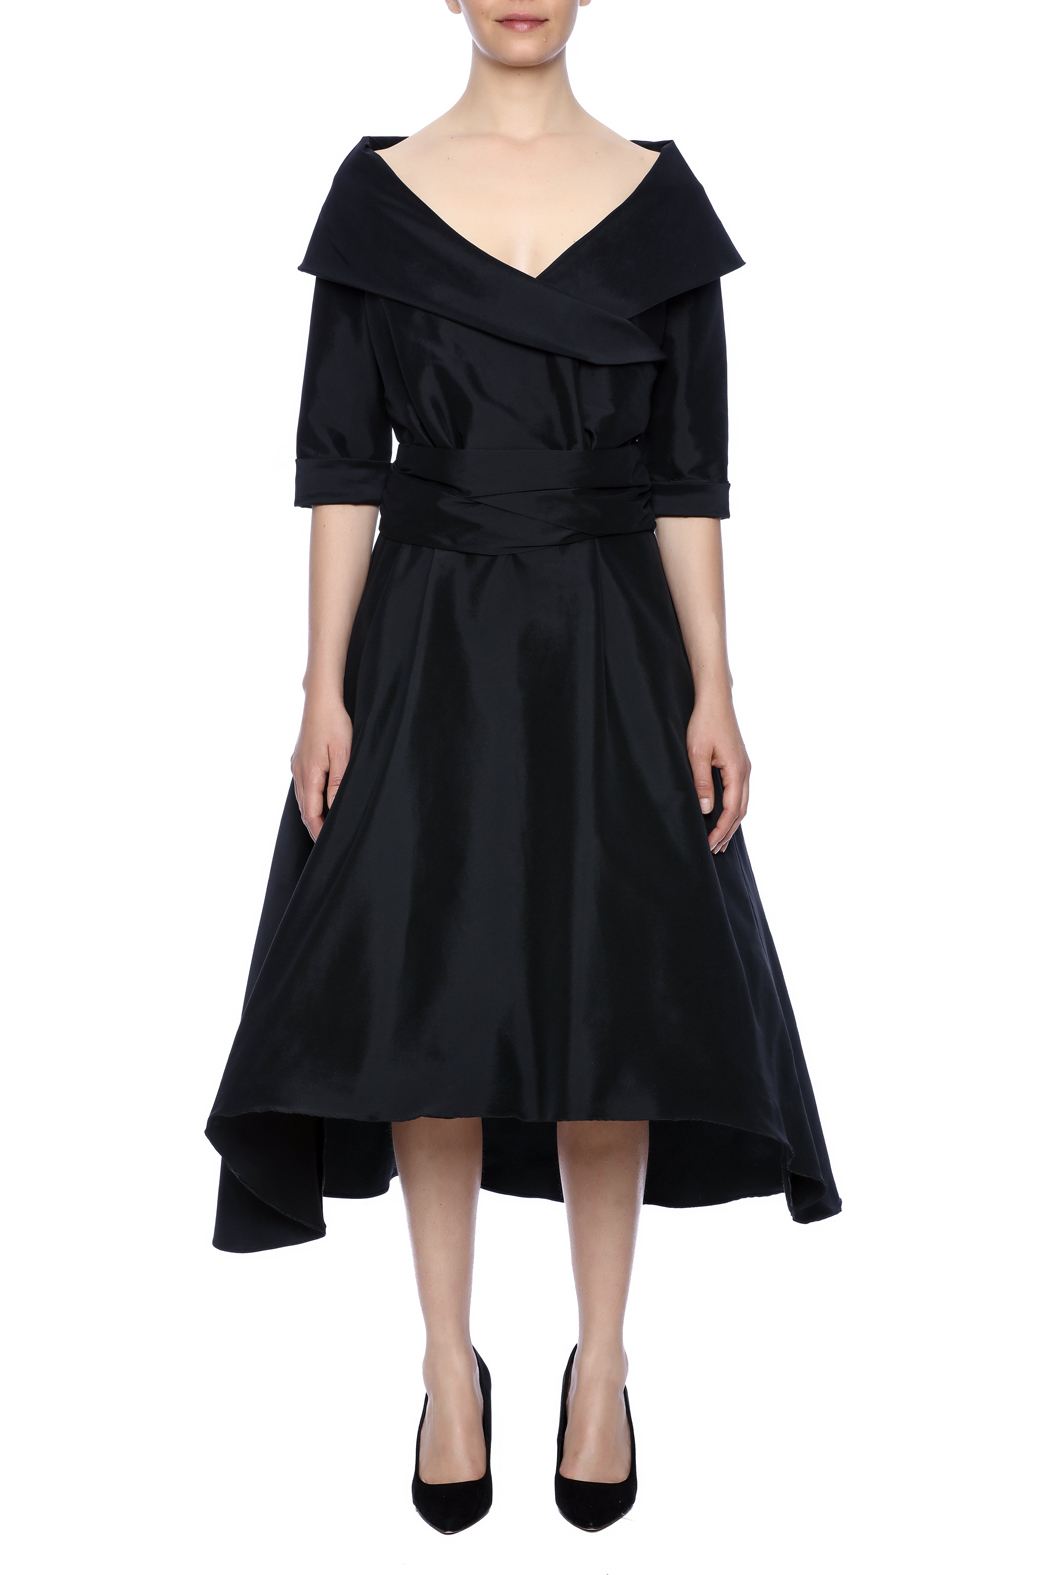 Robert Greco Couture Taffeta Portrait Collar Dress - Front Cropped Image